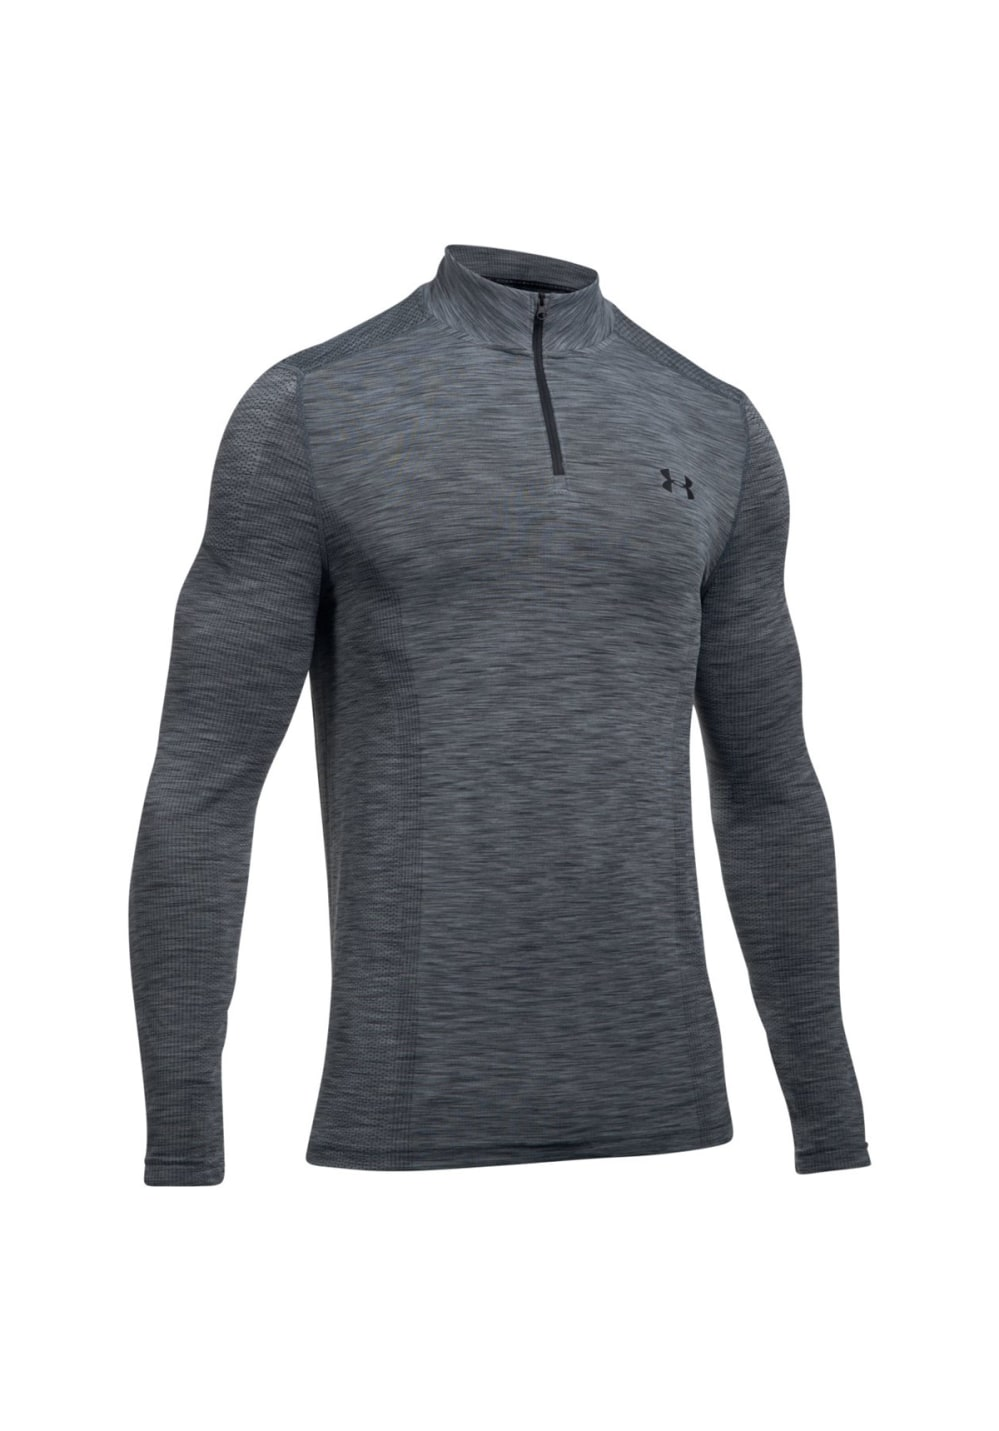 Under Armour Threadborne Seamless 1/4 Zip - Fitnessshirts für Herren - Grau, Gr